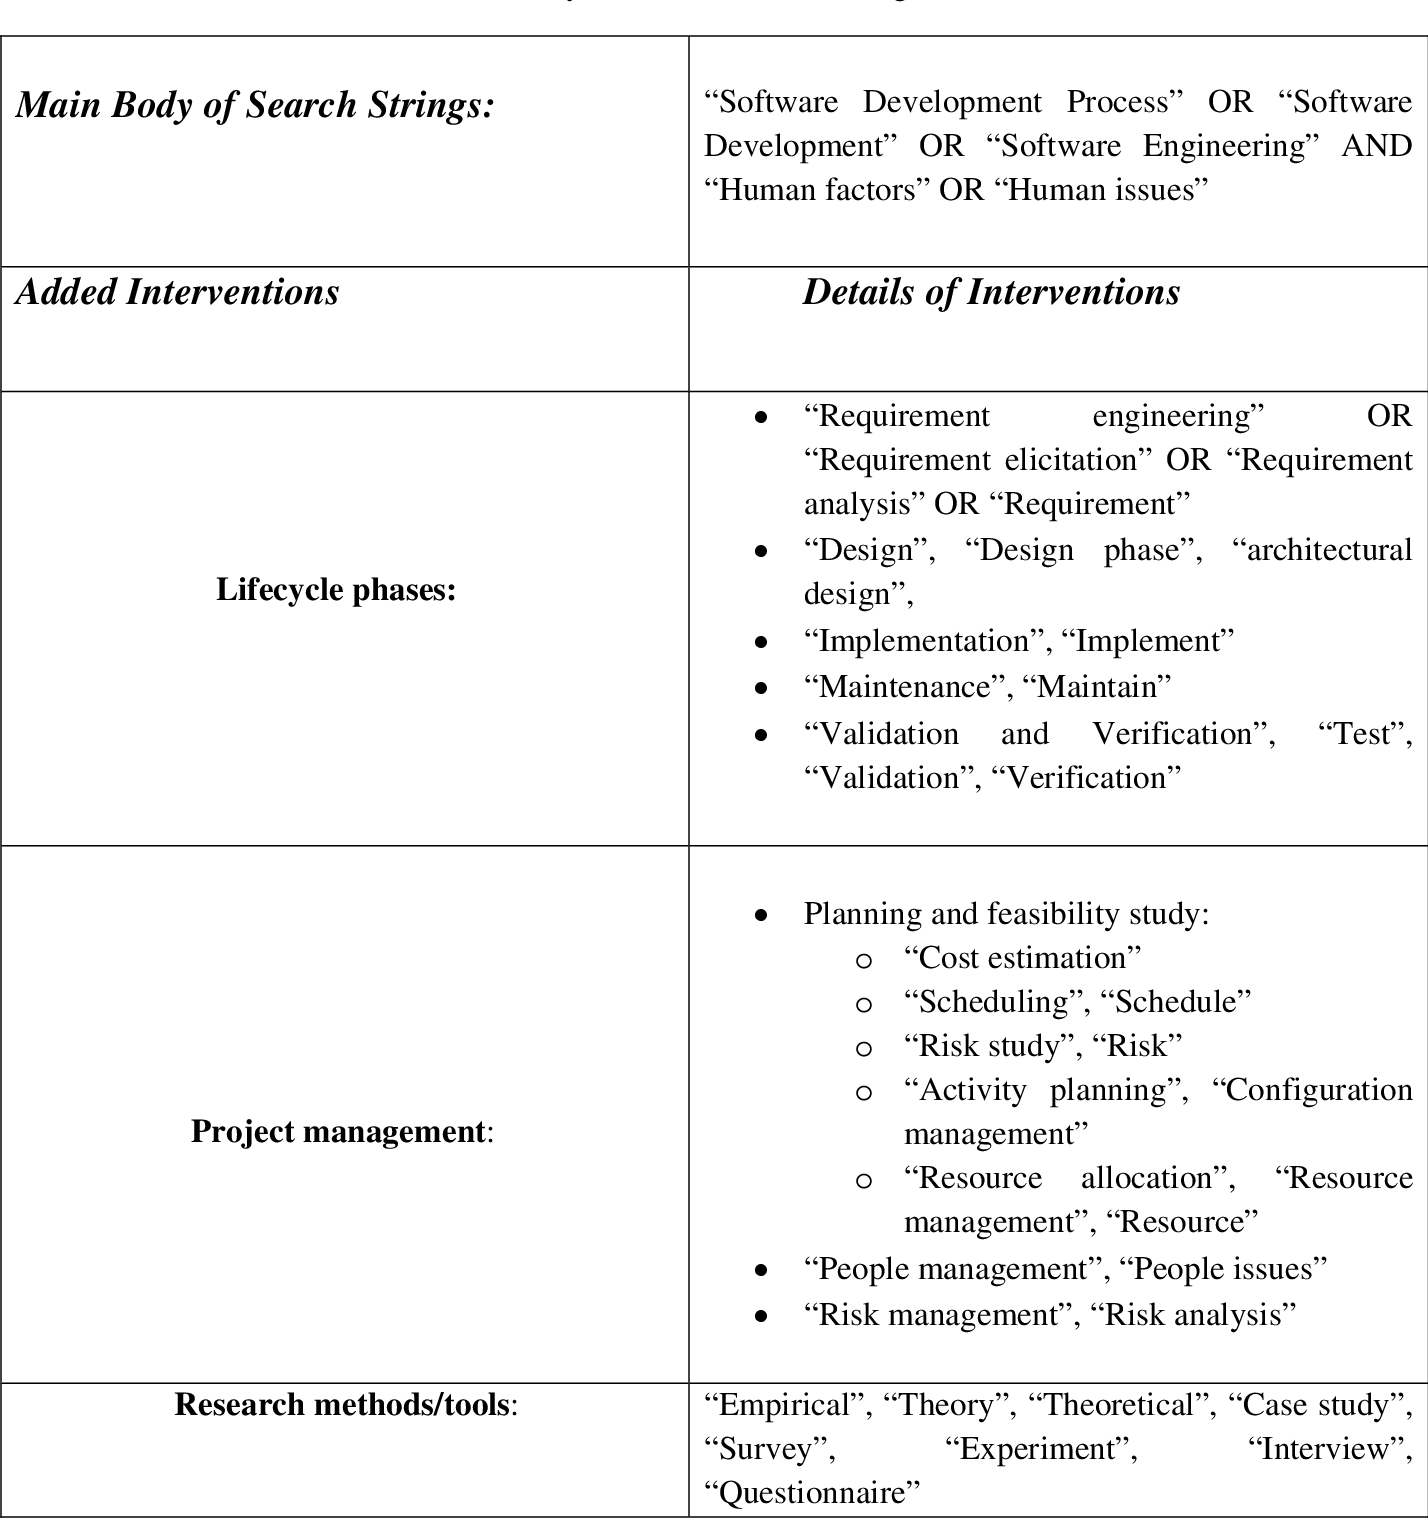 Pdf Human Factors In Software Development A Systematic Literature Review Semantic Scholar